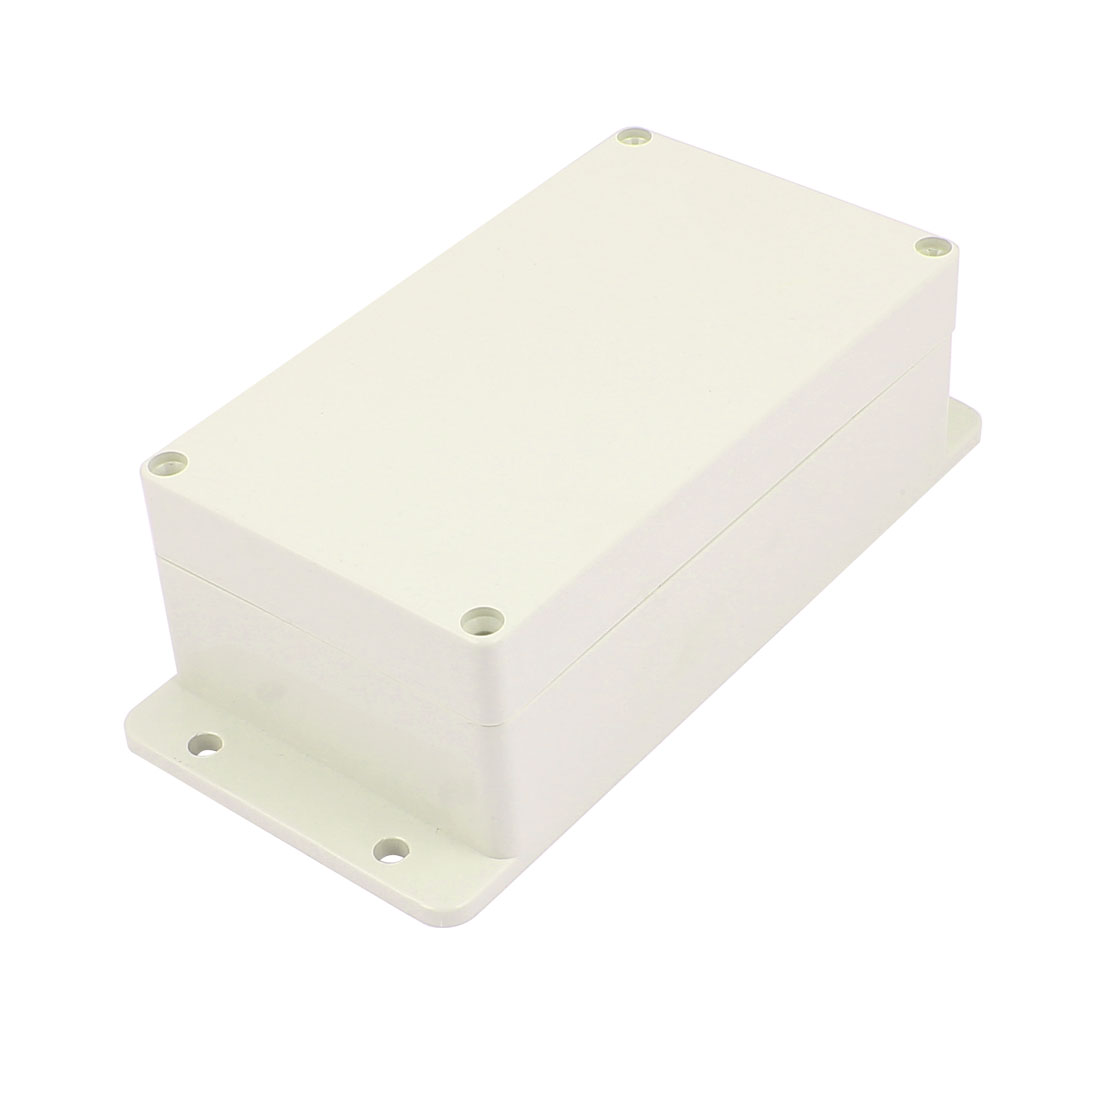 Dustproof IP65 Junction Box DIY Terminal Connection Enclosure Adaptable 150mm x 82mm x 52mm